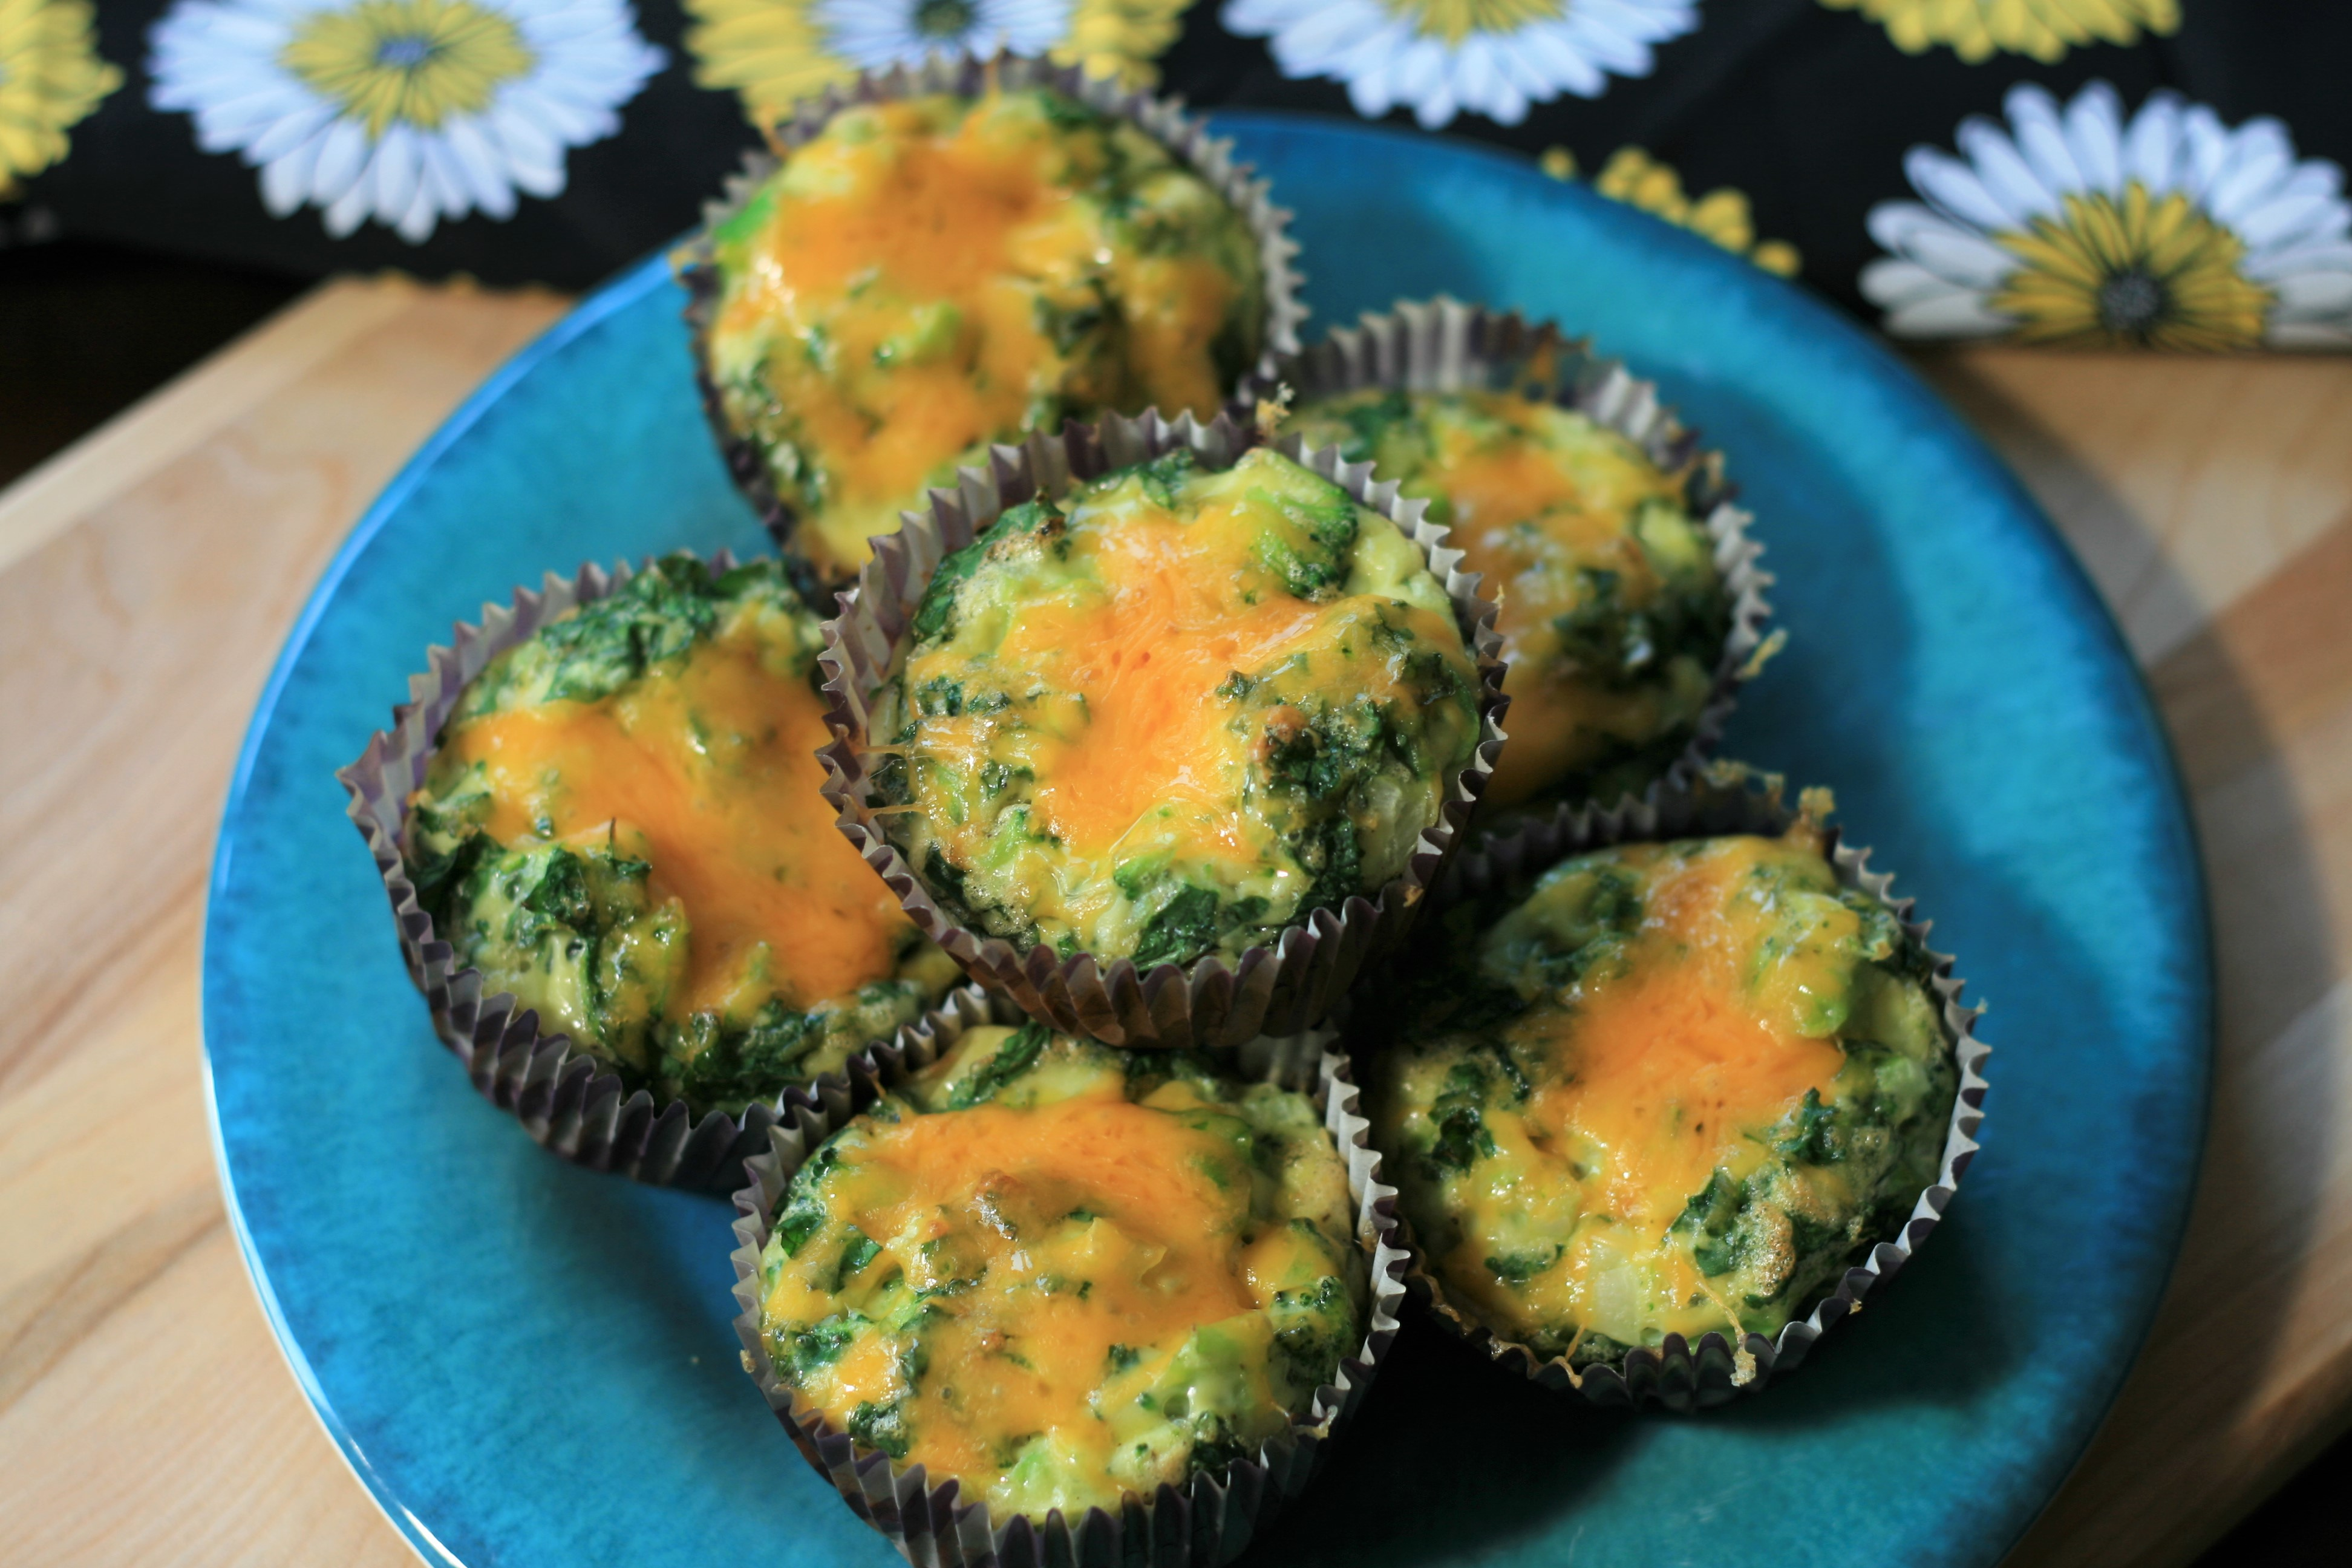 Omelet Muffins with Kale and Broccoli